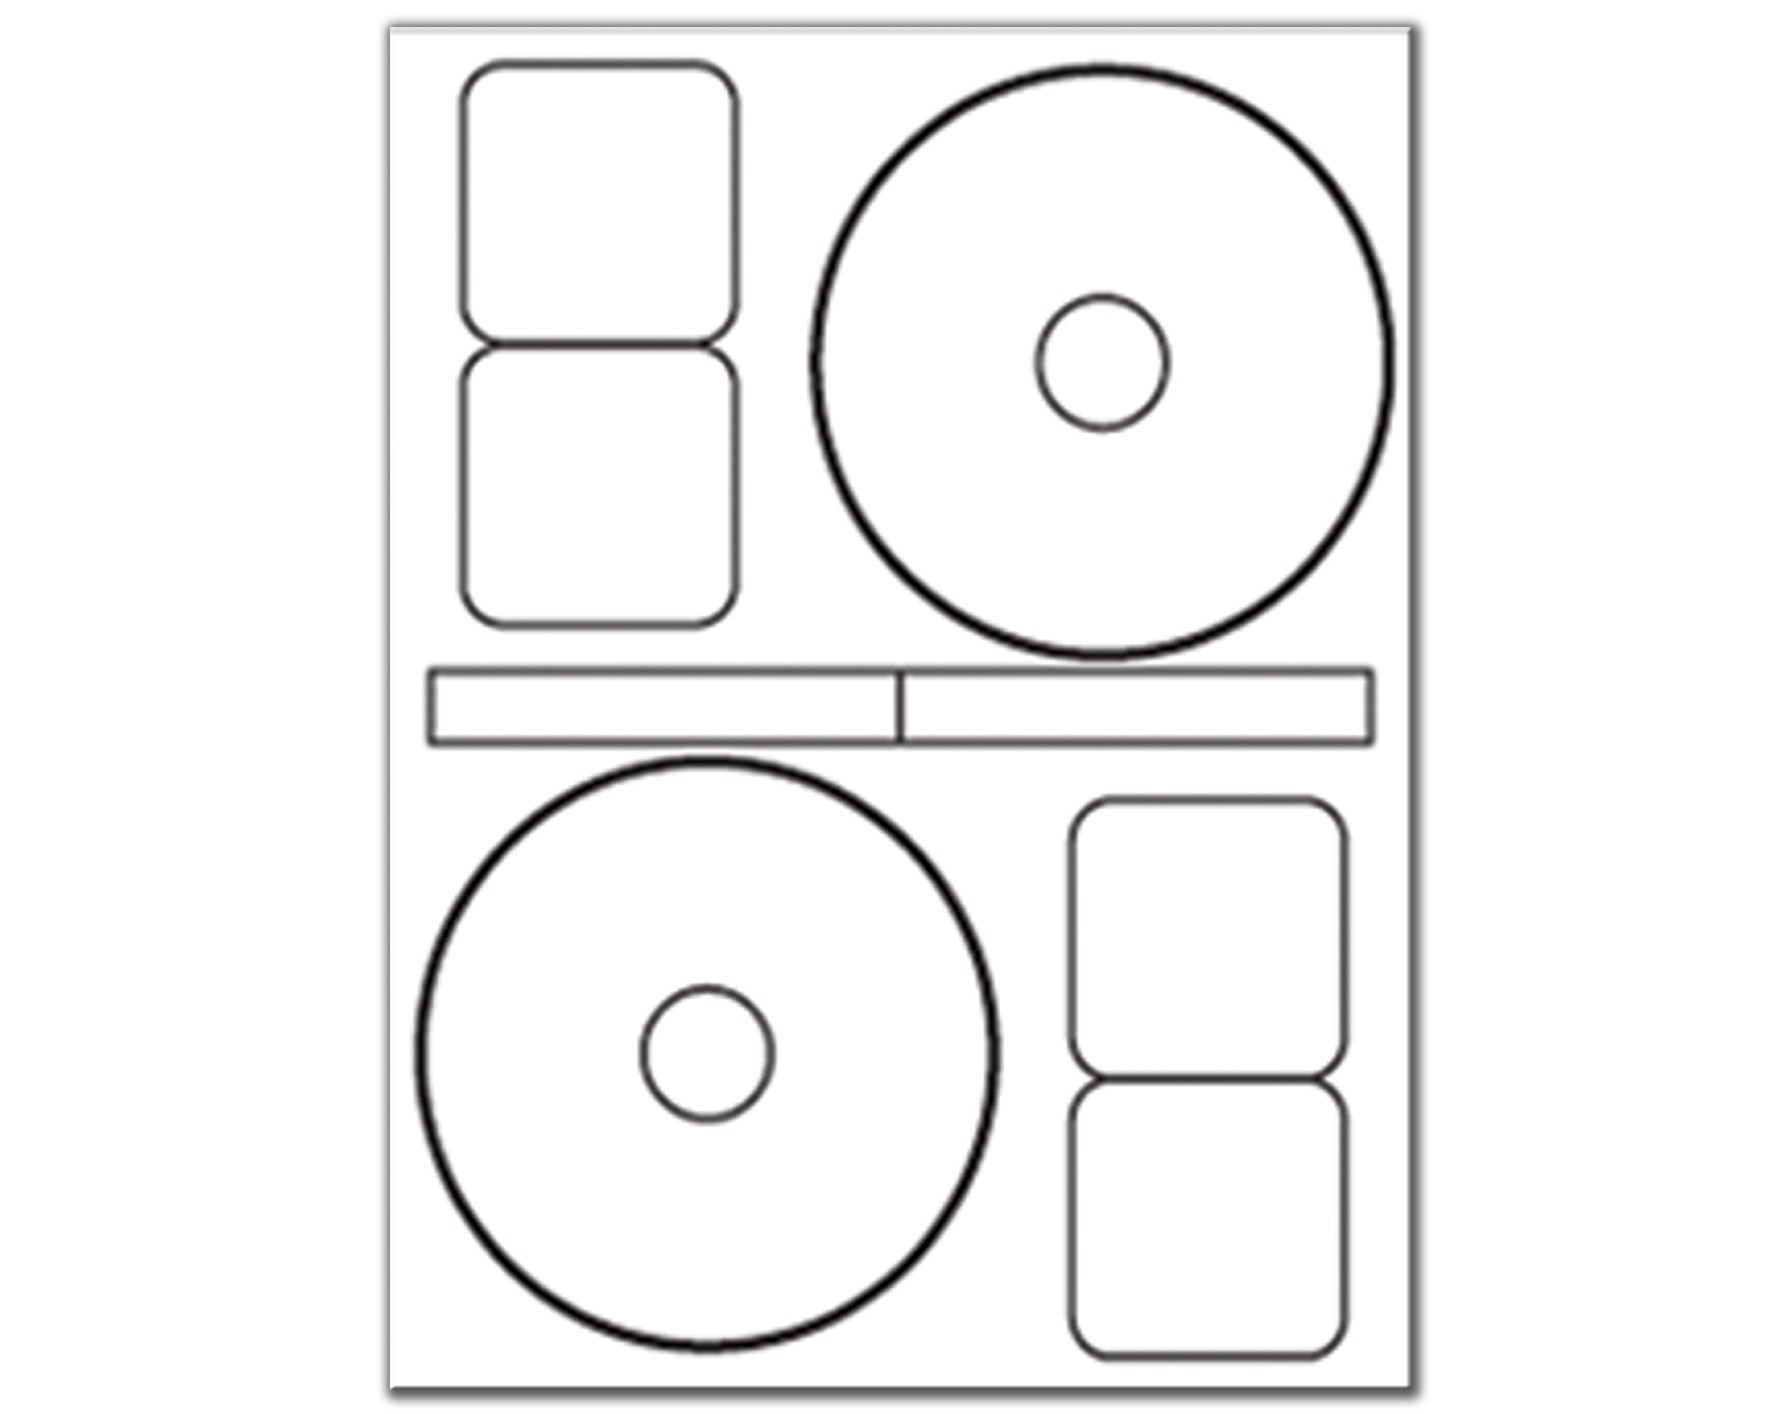 Stomper cd dvd labels 2 up 1 package cd dvd labels for Fellowes cd label template